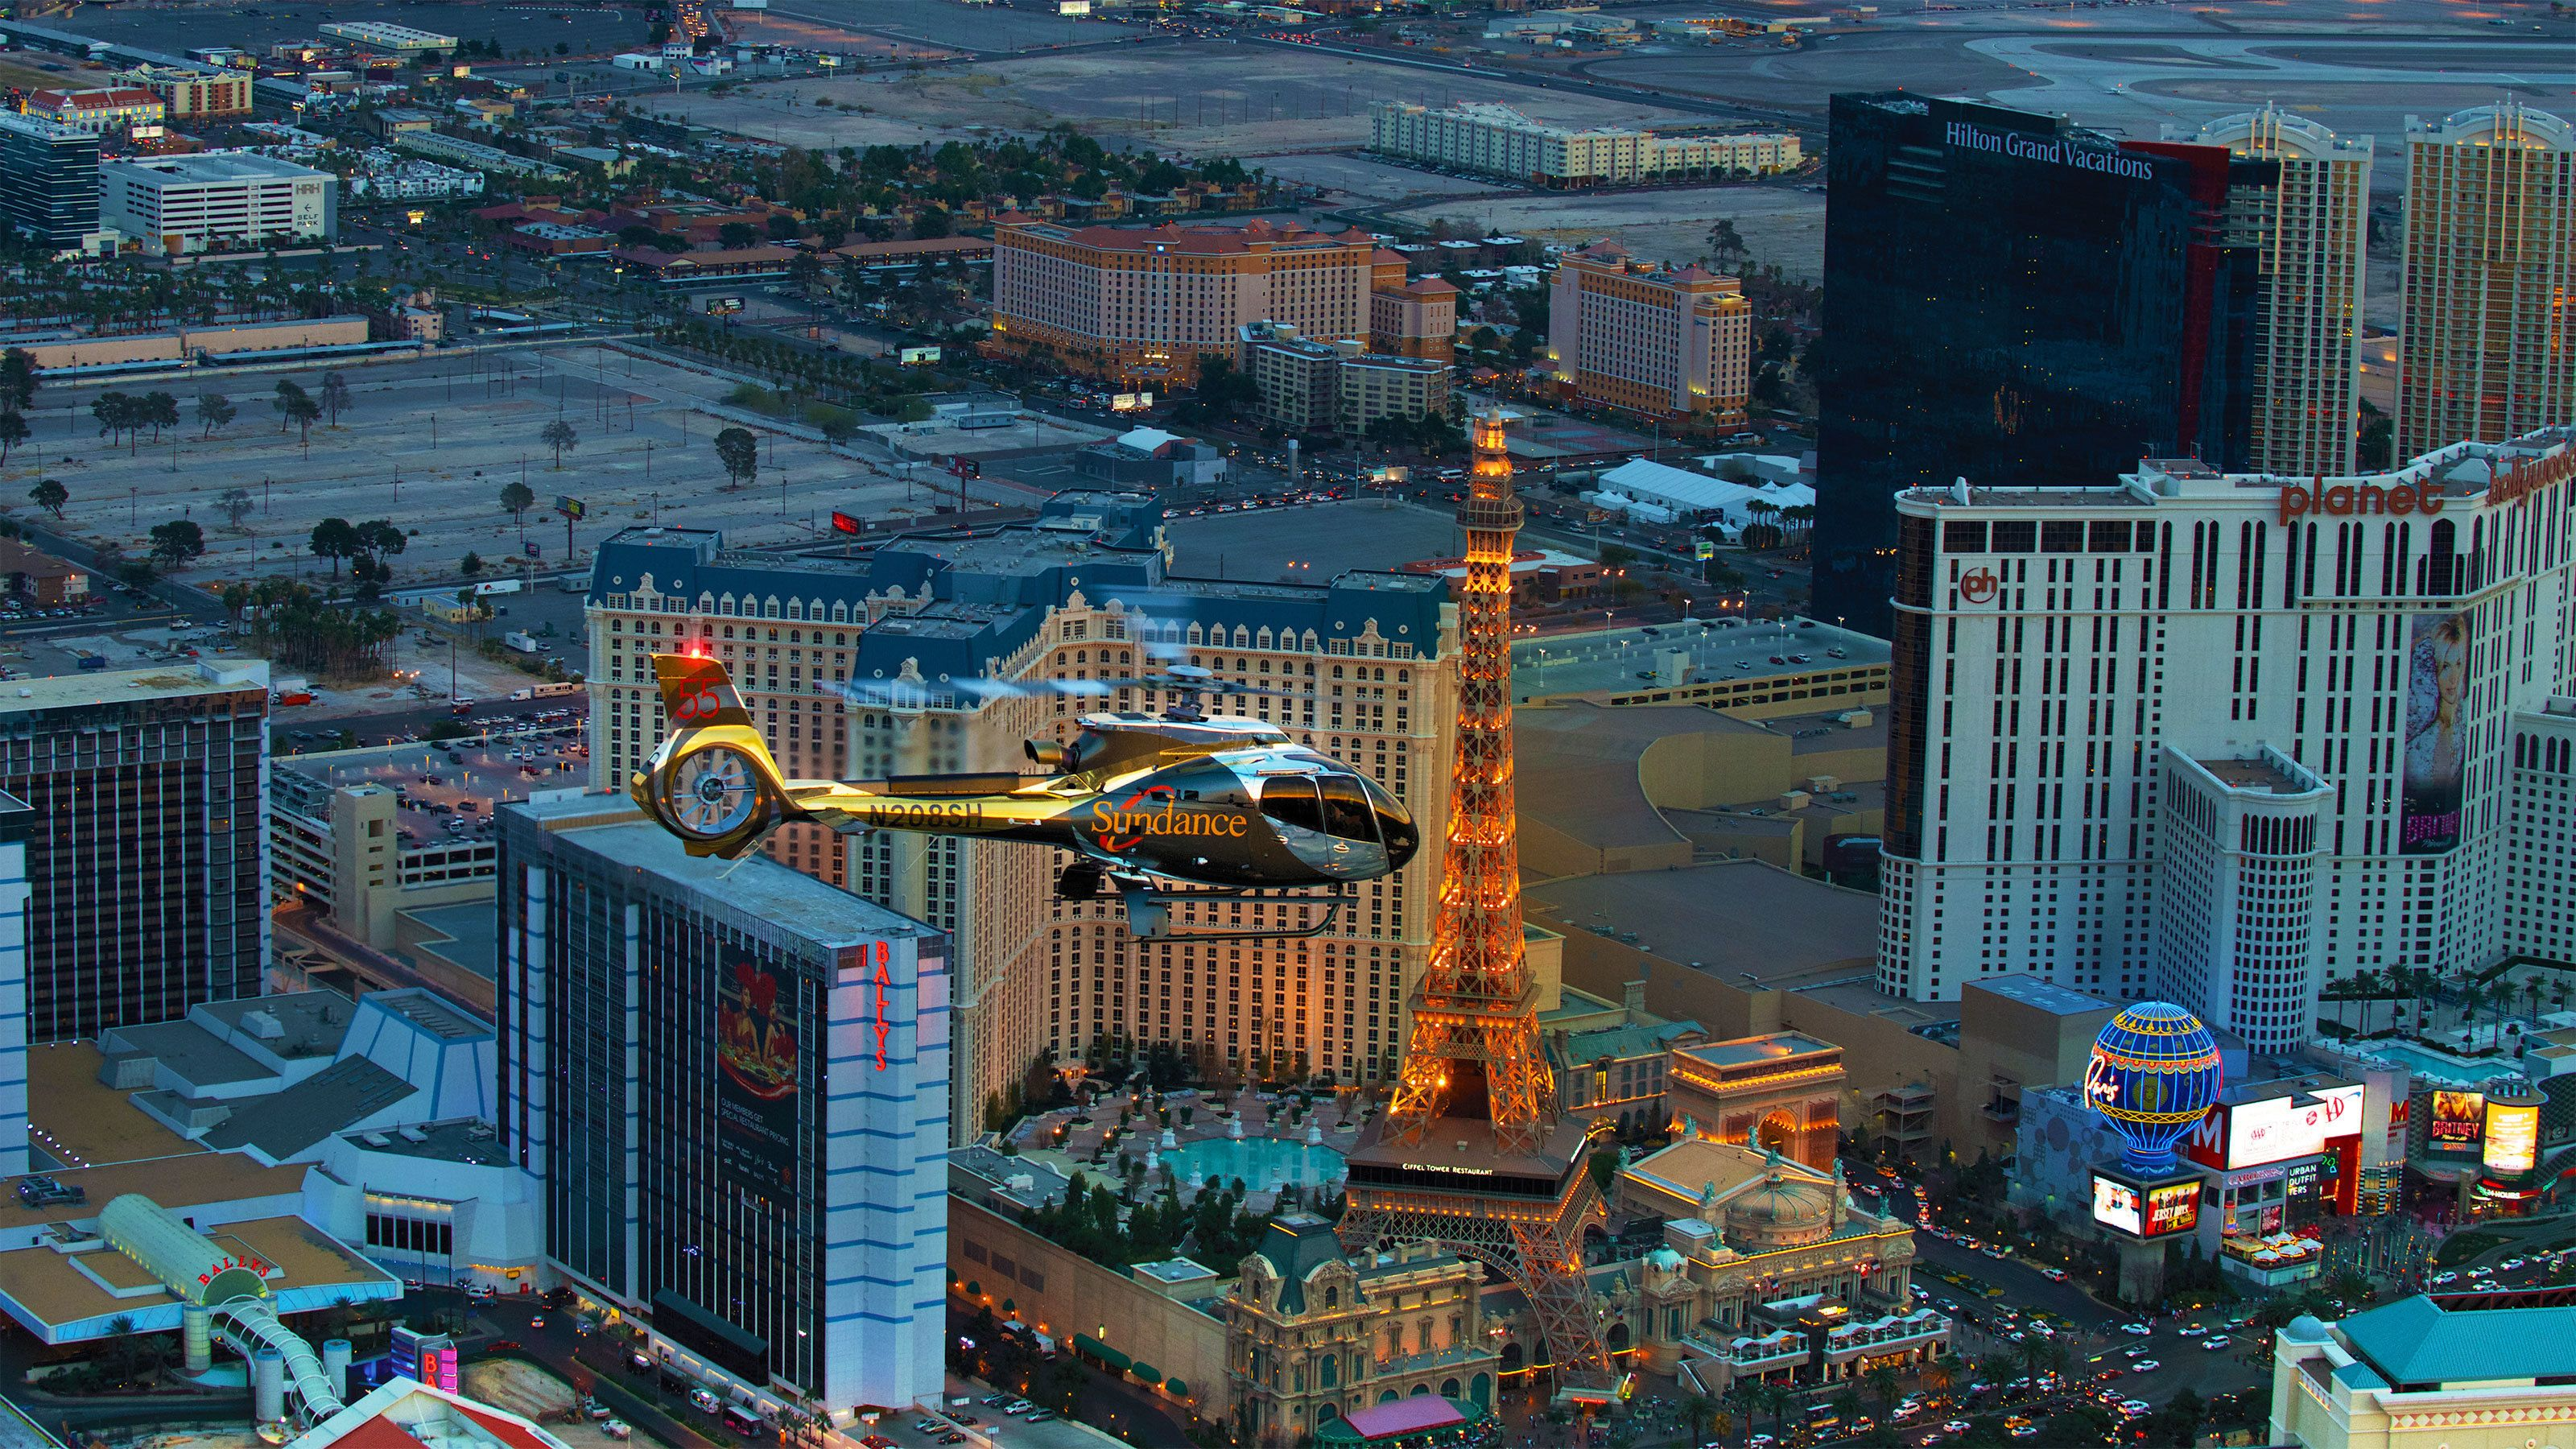 Helicopter flying above The Strip in Las Vegas at night